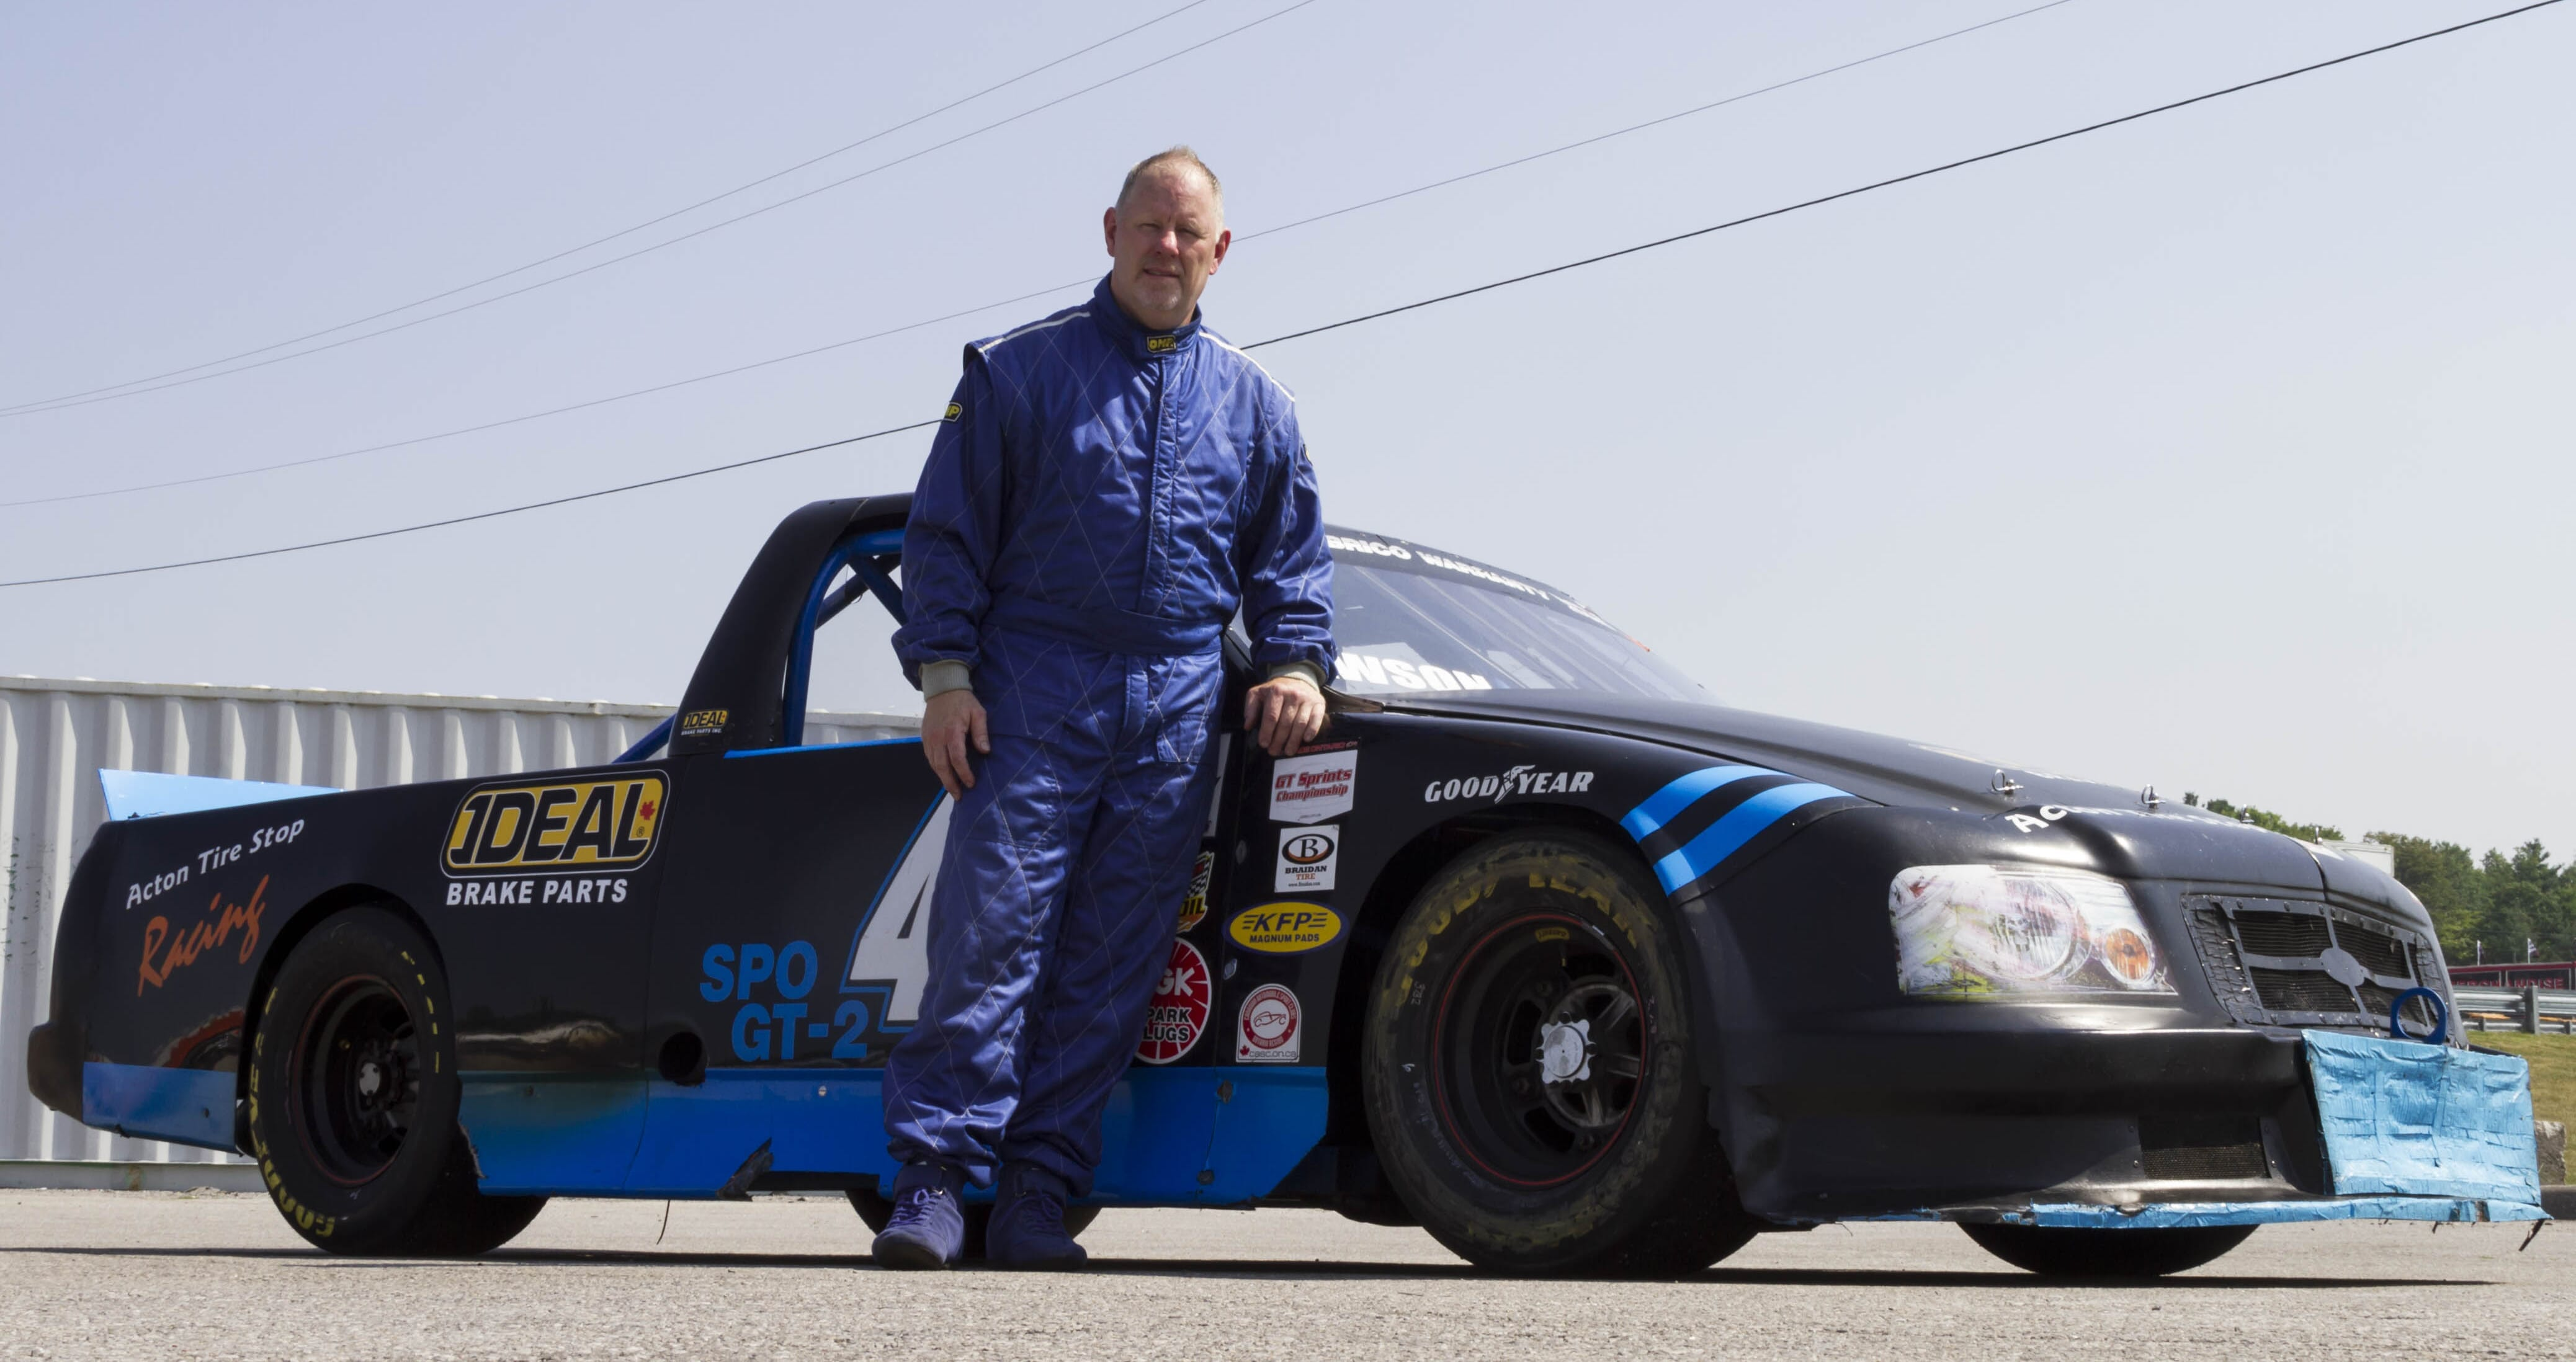 Chris standing with his custom F-150 looking for the checkered flag.